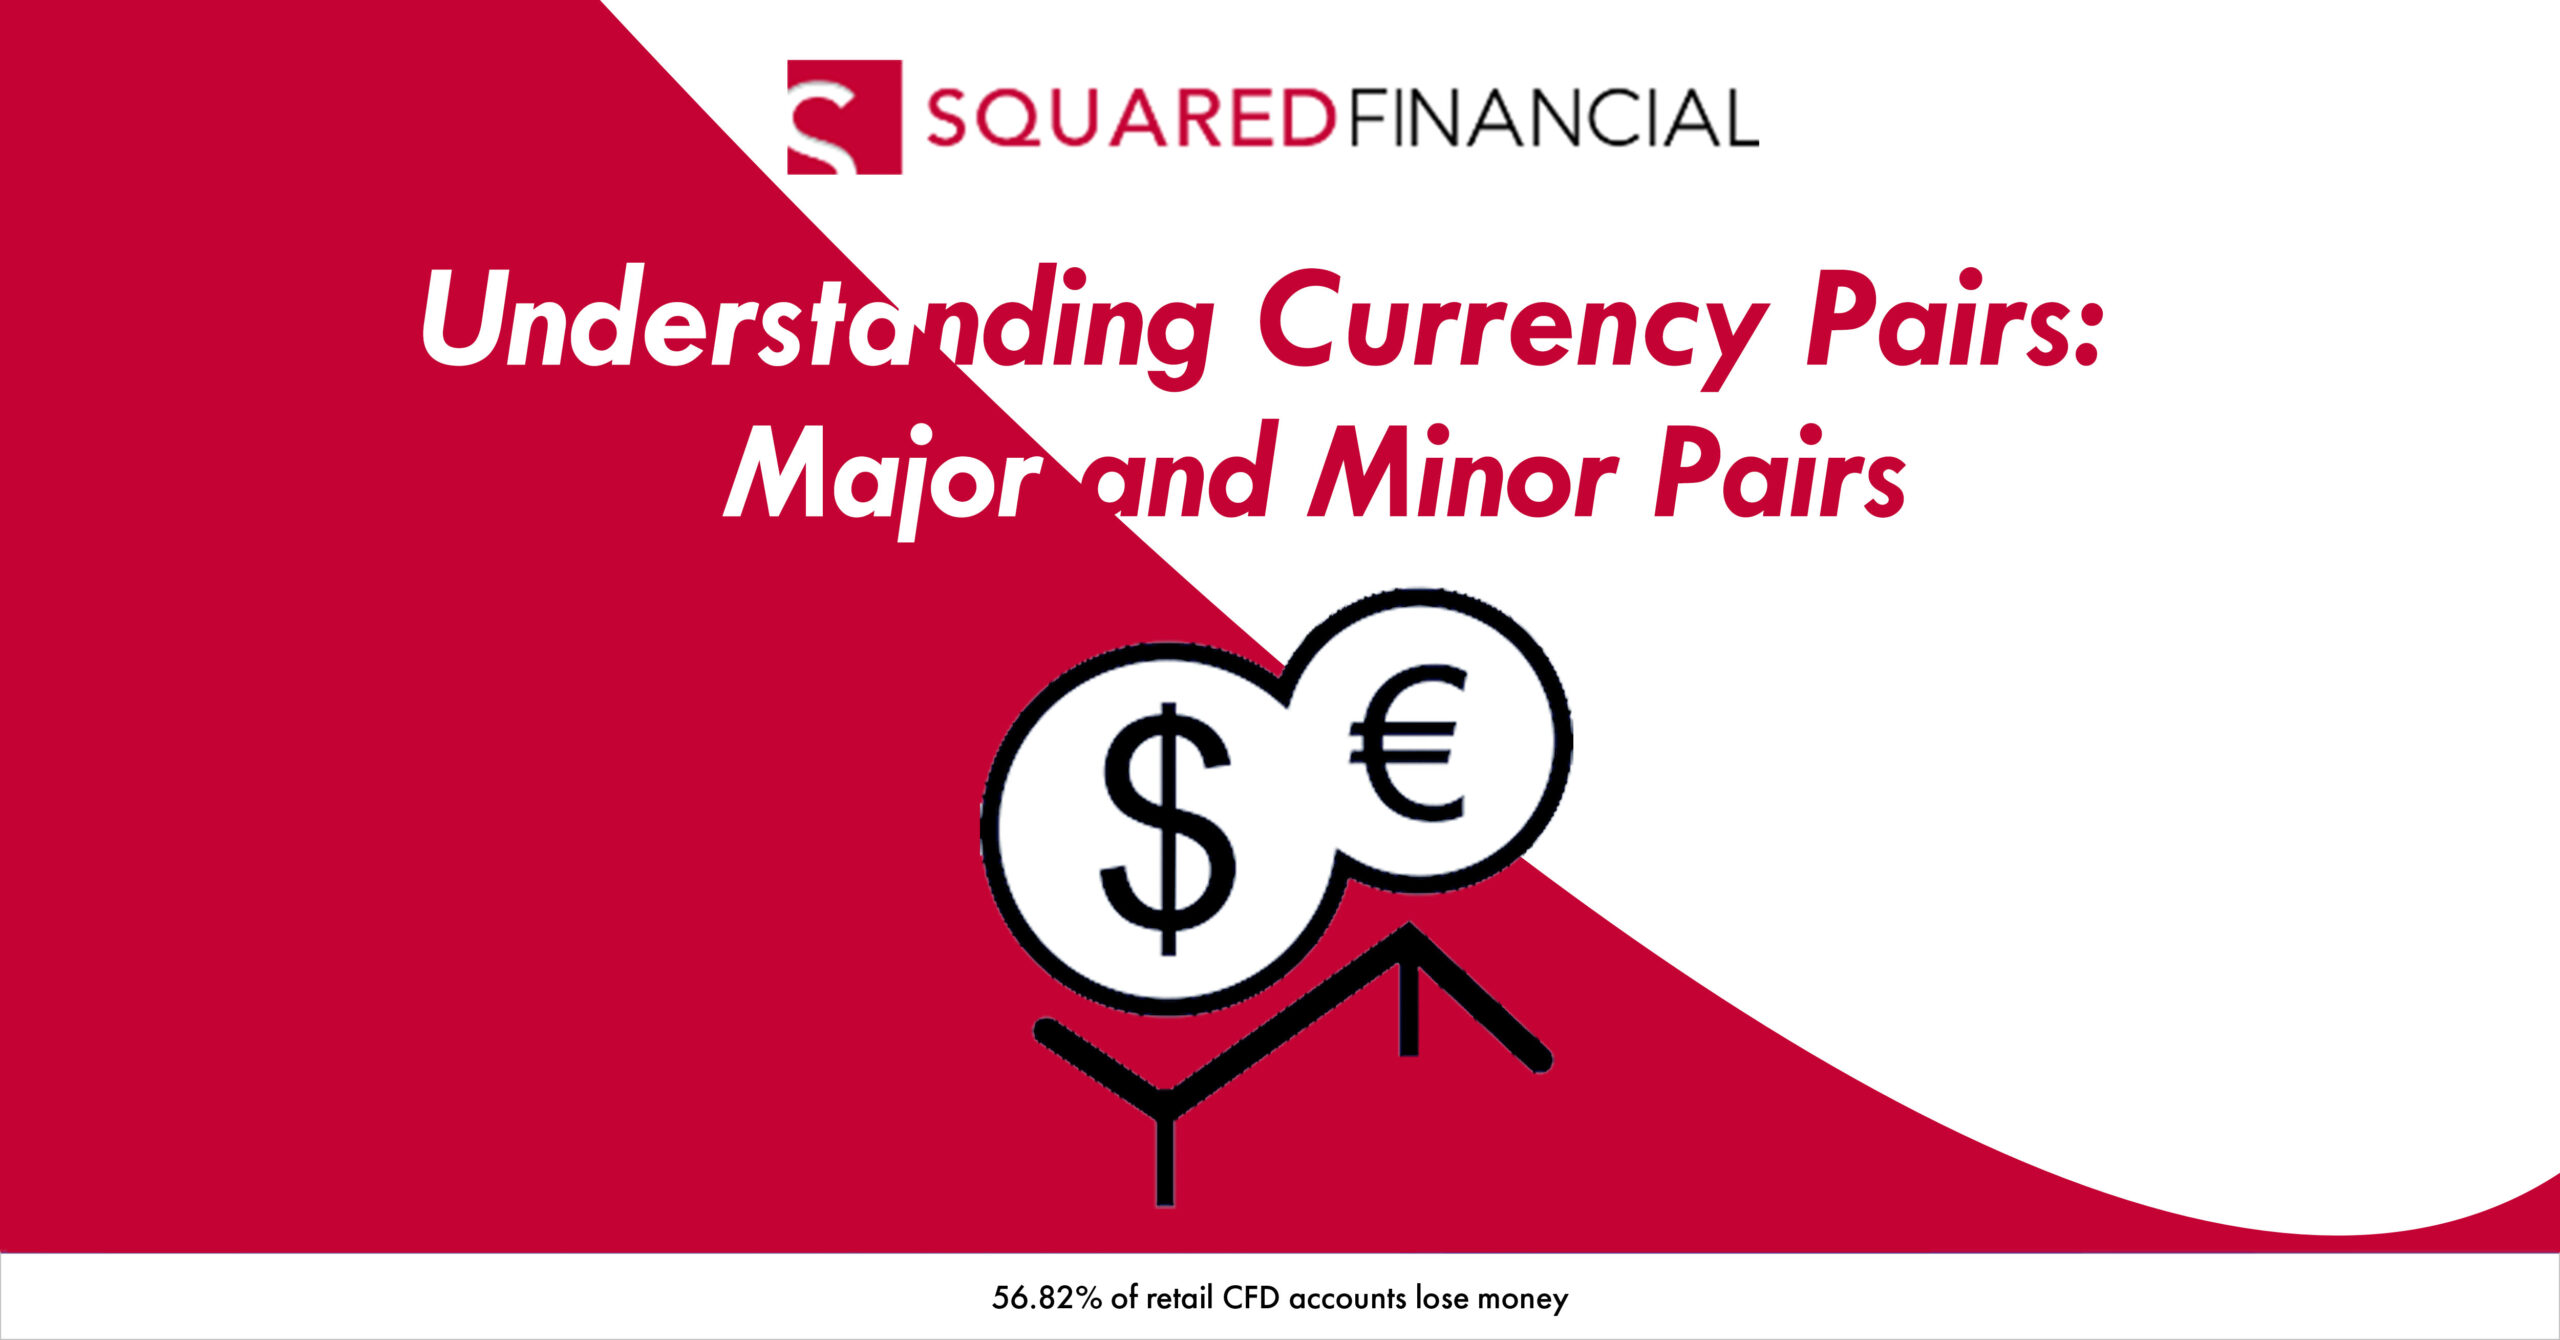 Understanding Currency Pairs: Major and Minor Pairs